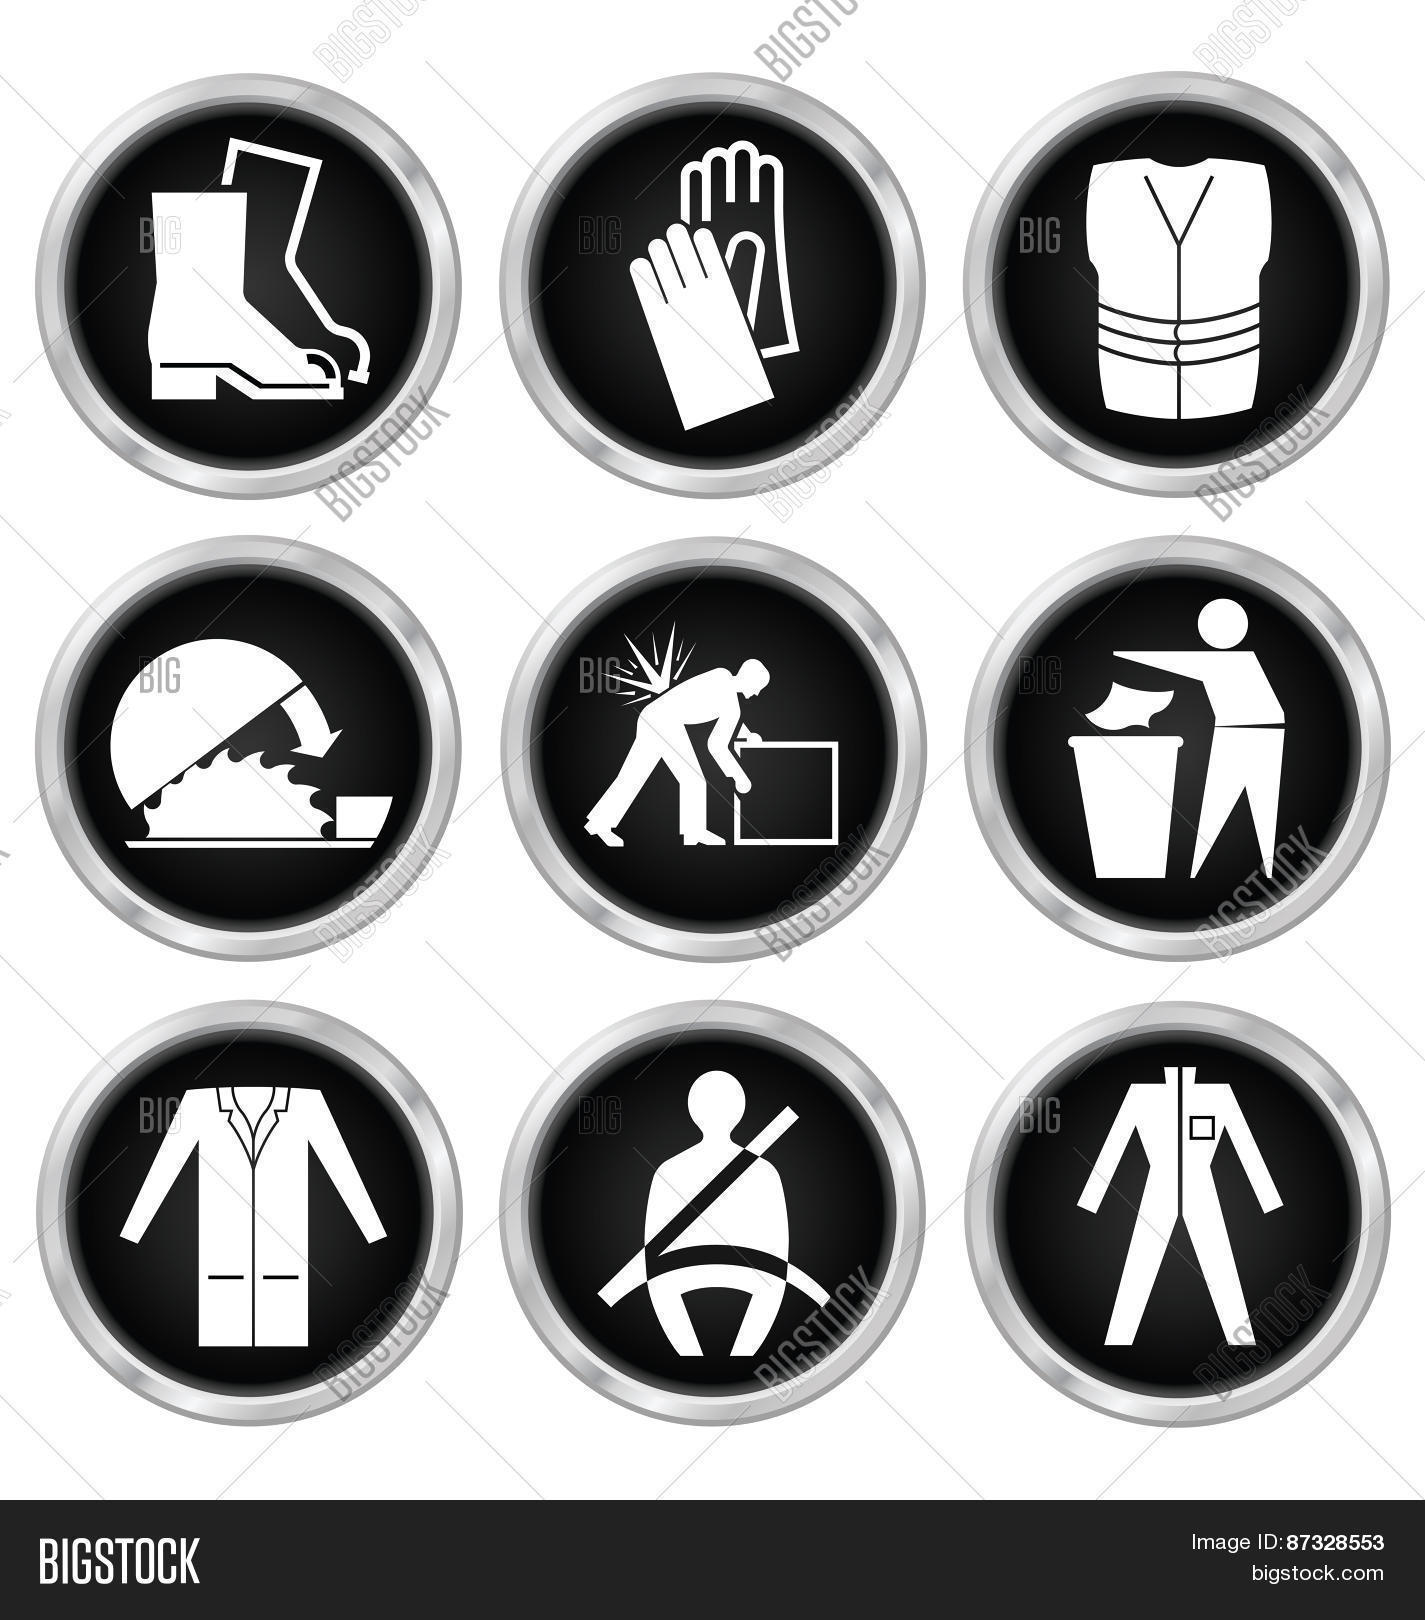 Health Safety Icons Vector Photo Free Trial Bigstock Ready to be used in web design, mobile apps and presentations. health safety icons vector photo